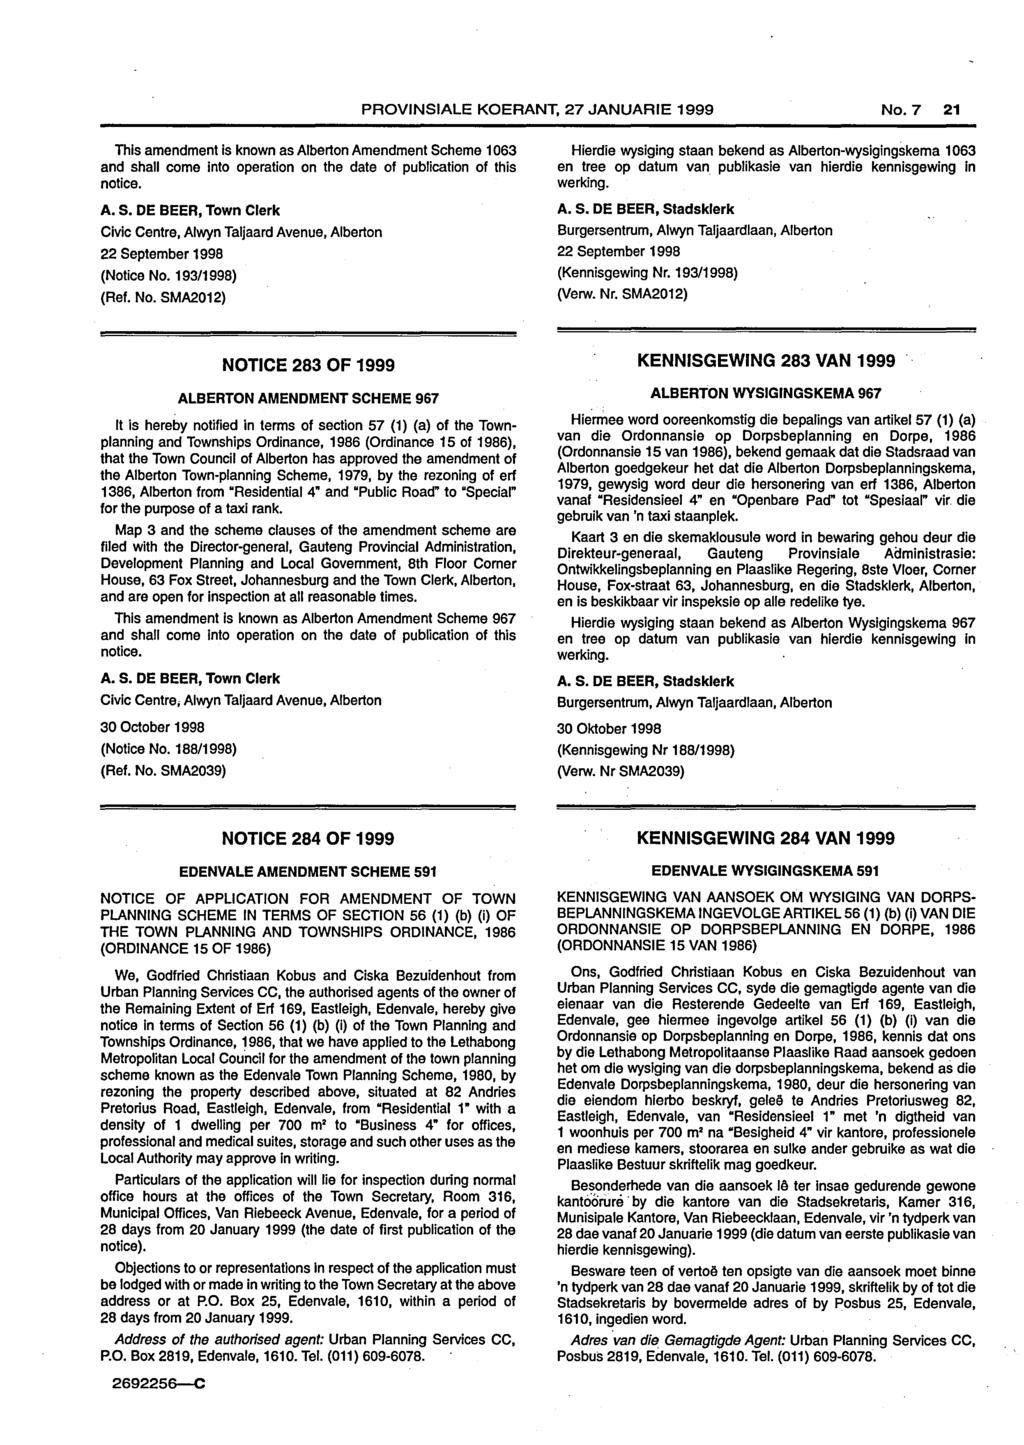 PROVJNSIALE KOERANT, 27 JANUARIE 1999 No.7 21 This amendment is known as Alberton Amendment Scheme 1 063 and shall come into operation on the date of publication of this notice. A. S. DE BEER, Town Clerk Civic Centre, Alwyn Taljaard Avenue, Alberton 22 September 1998 (Notice No.